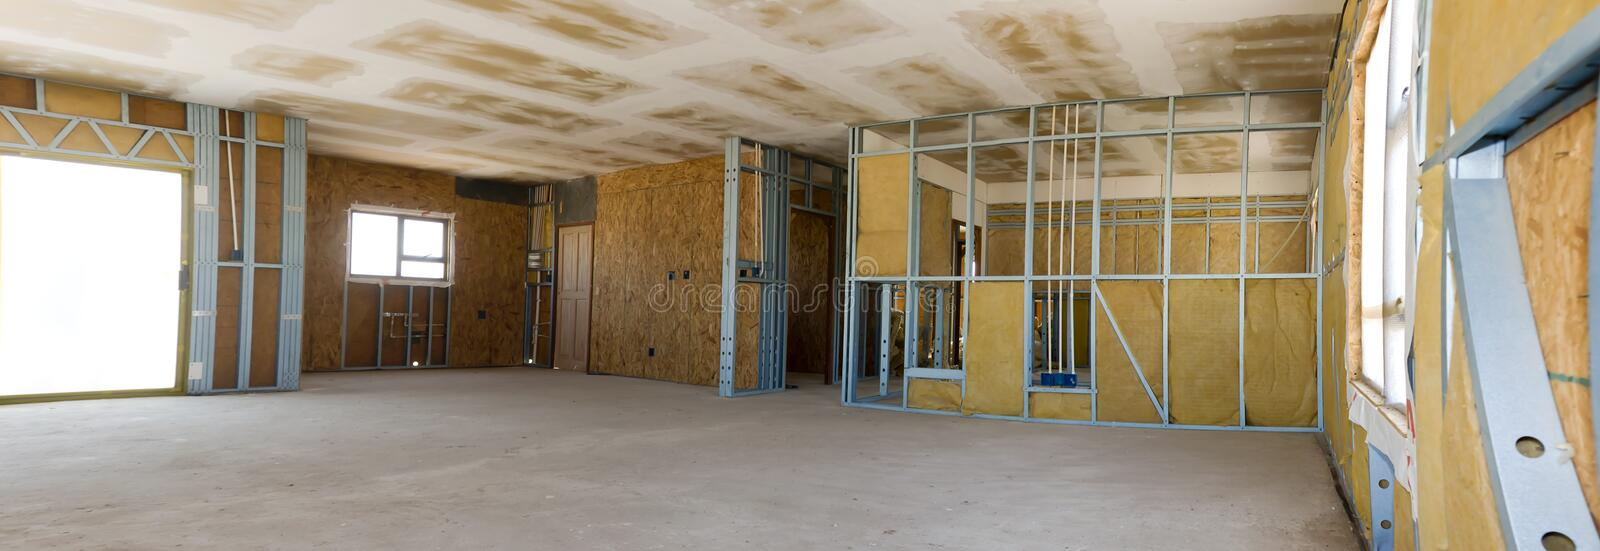 Construction Site - Inside View - Wide Angle. Internal view of metal frame based prefabrication form of building, construction site. Wide angle perspective, from stock photography